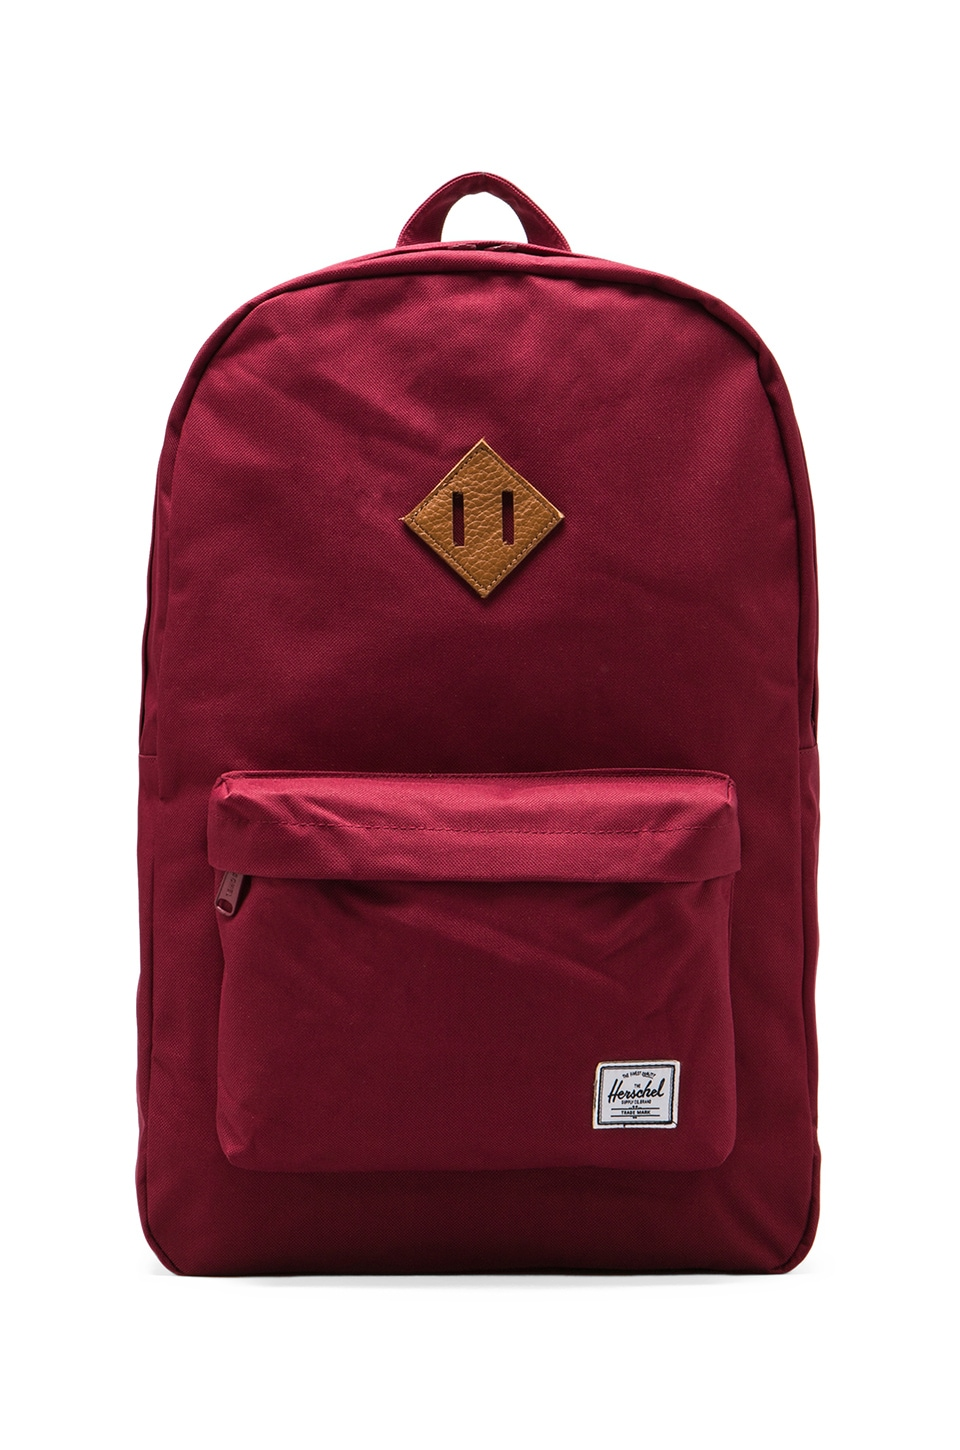 Herschel Supply Co. Sac à dos Heritage en Bordeaux